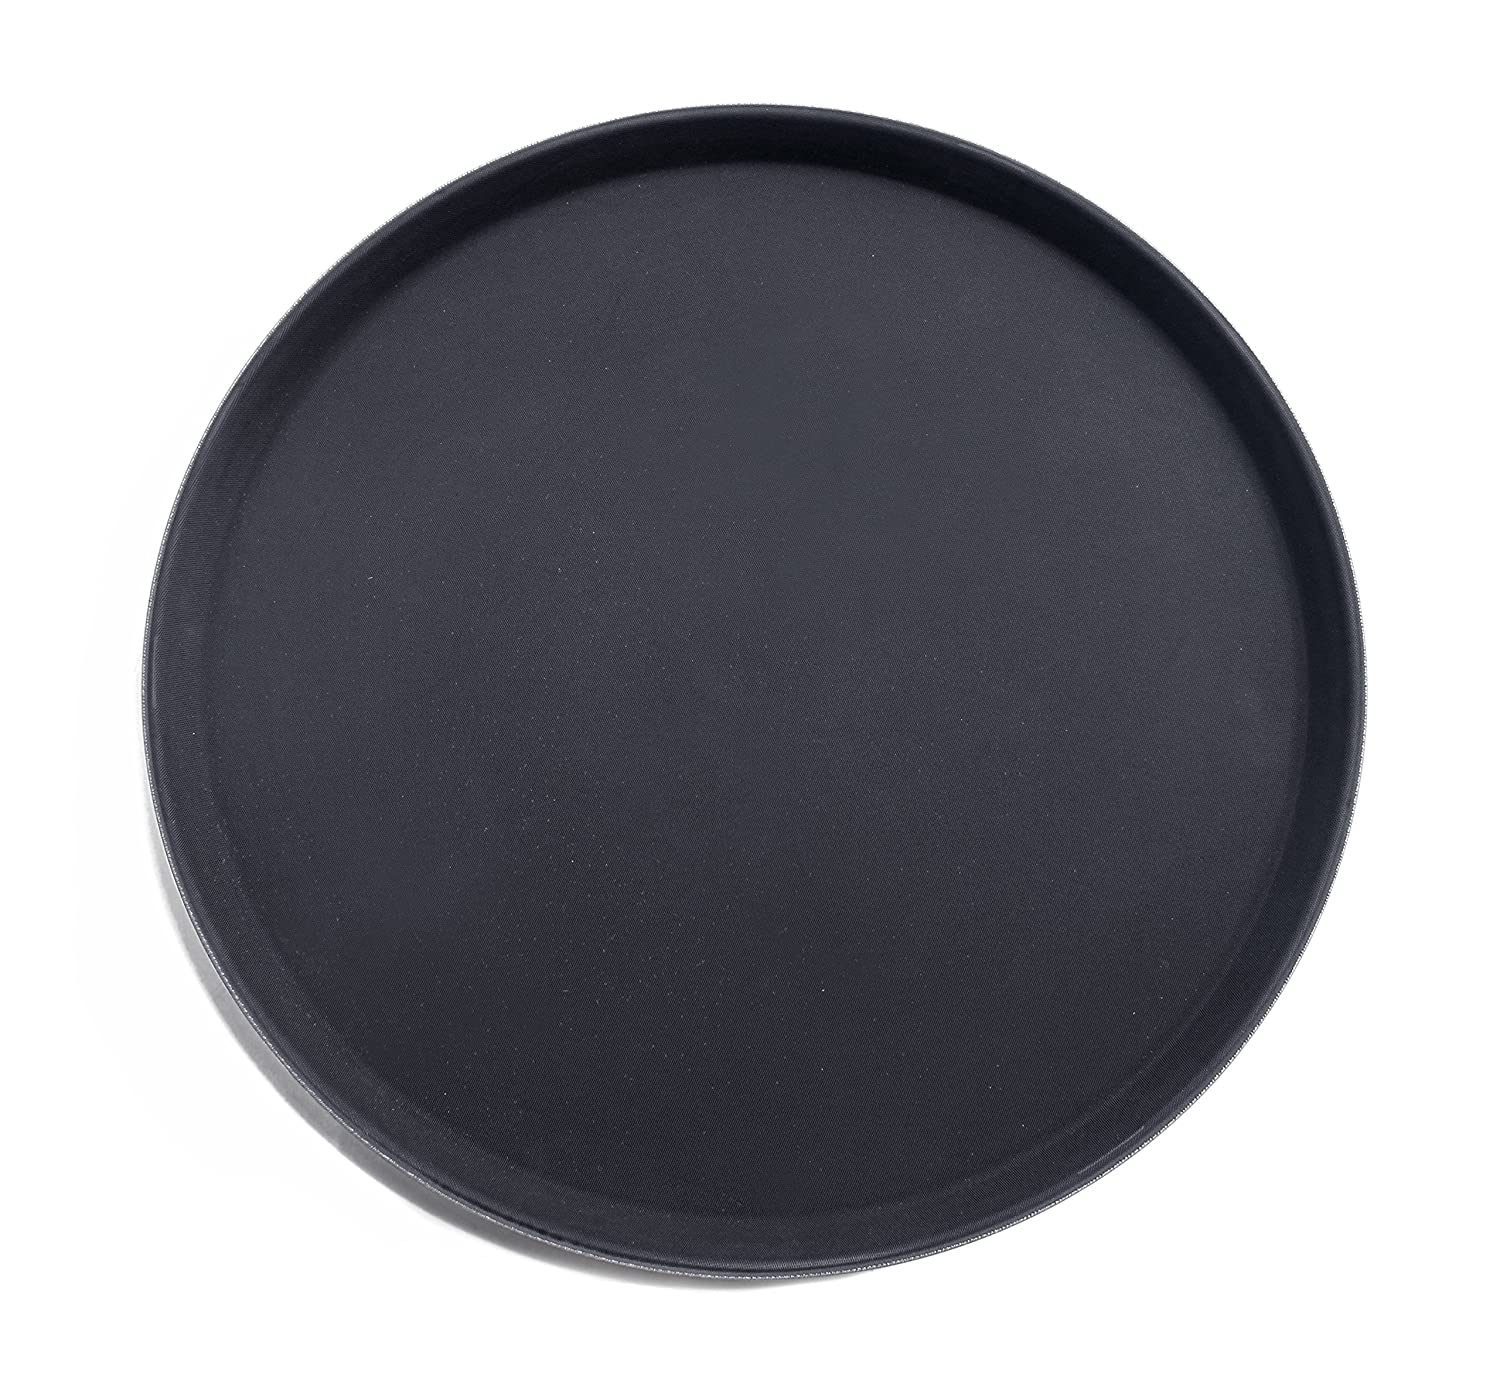 New Star Foodservice 25330 Non-Slip Tray, Plastic, Rubber Lined,Round, 18 inch, Black